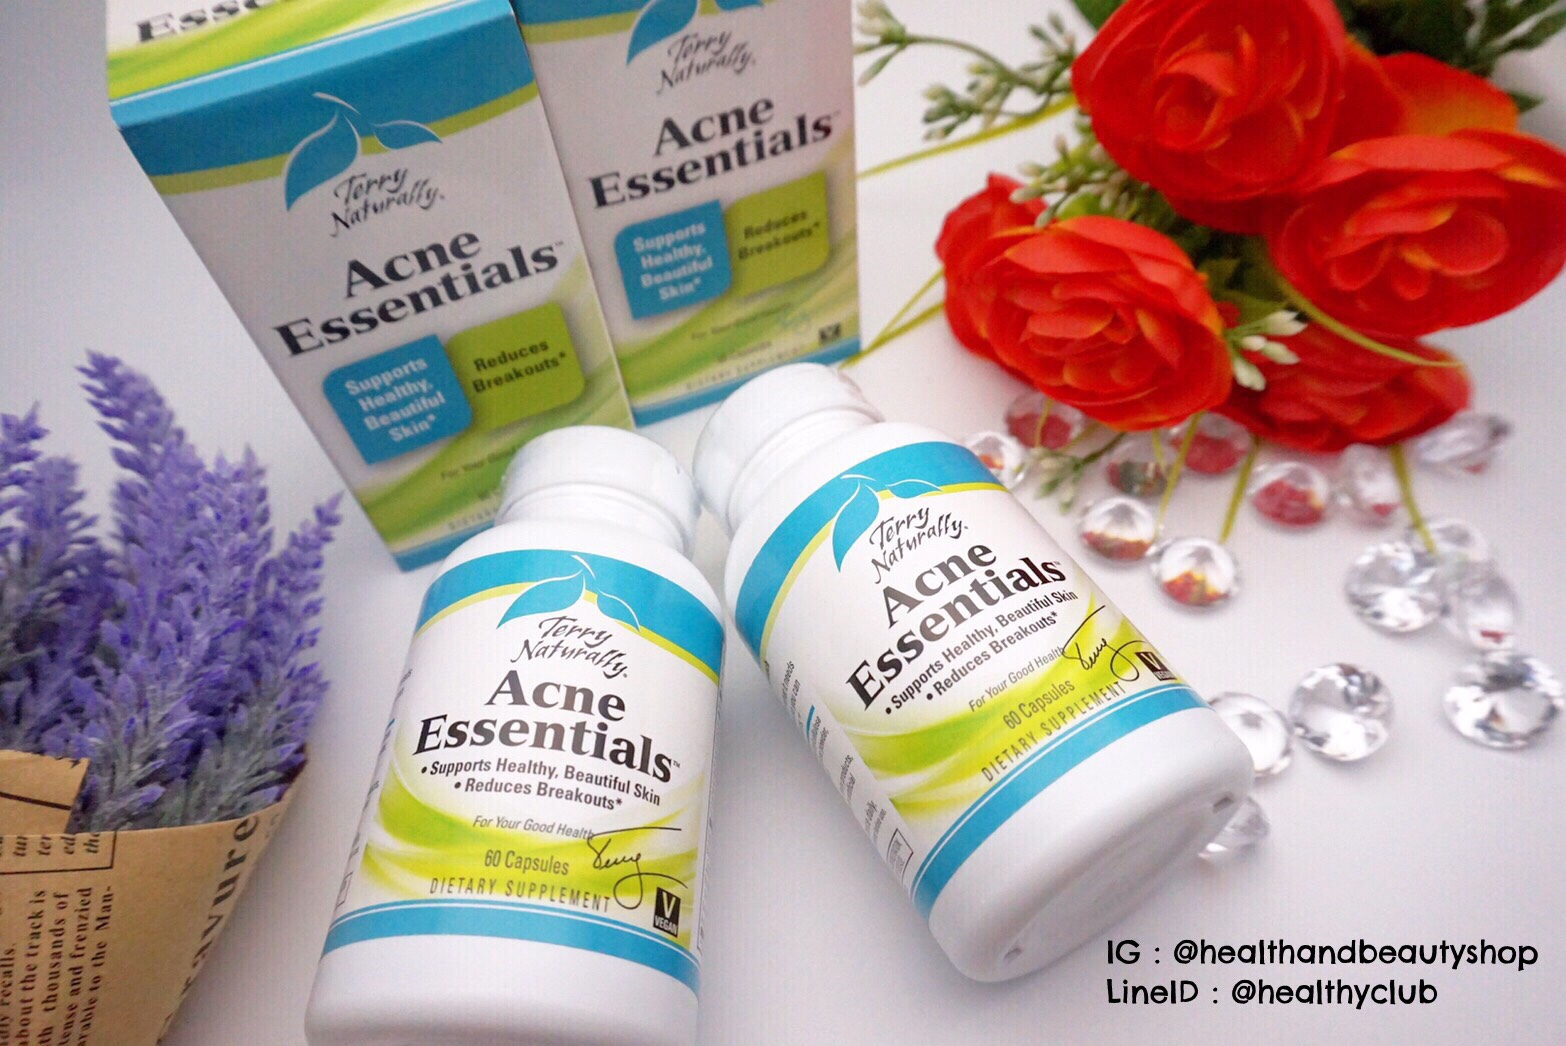 # สิวเรื้อรัง # EuroPharma, Terry Naturally, Acne Essentials, 60 Capsules